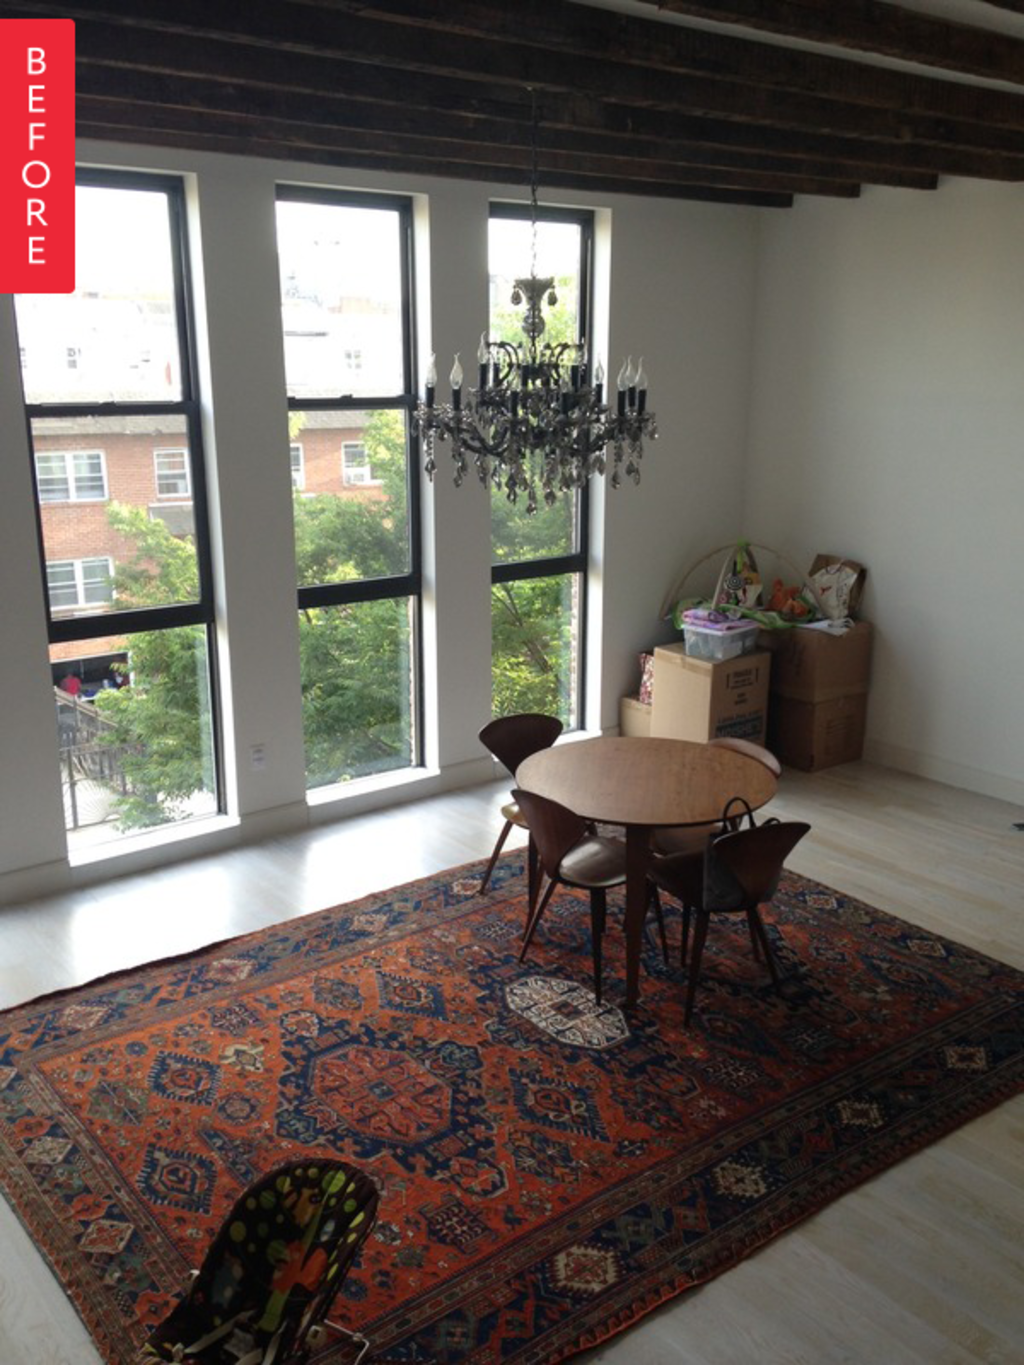 Before & After: A Spacious Living Room Gets an Entirely New Look